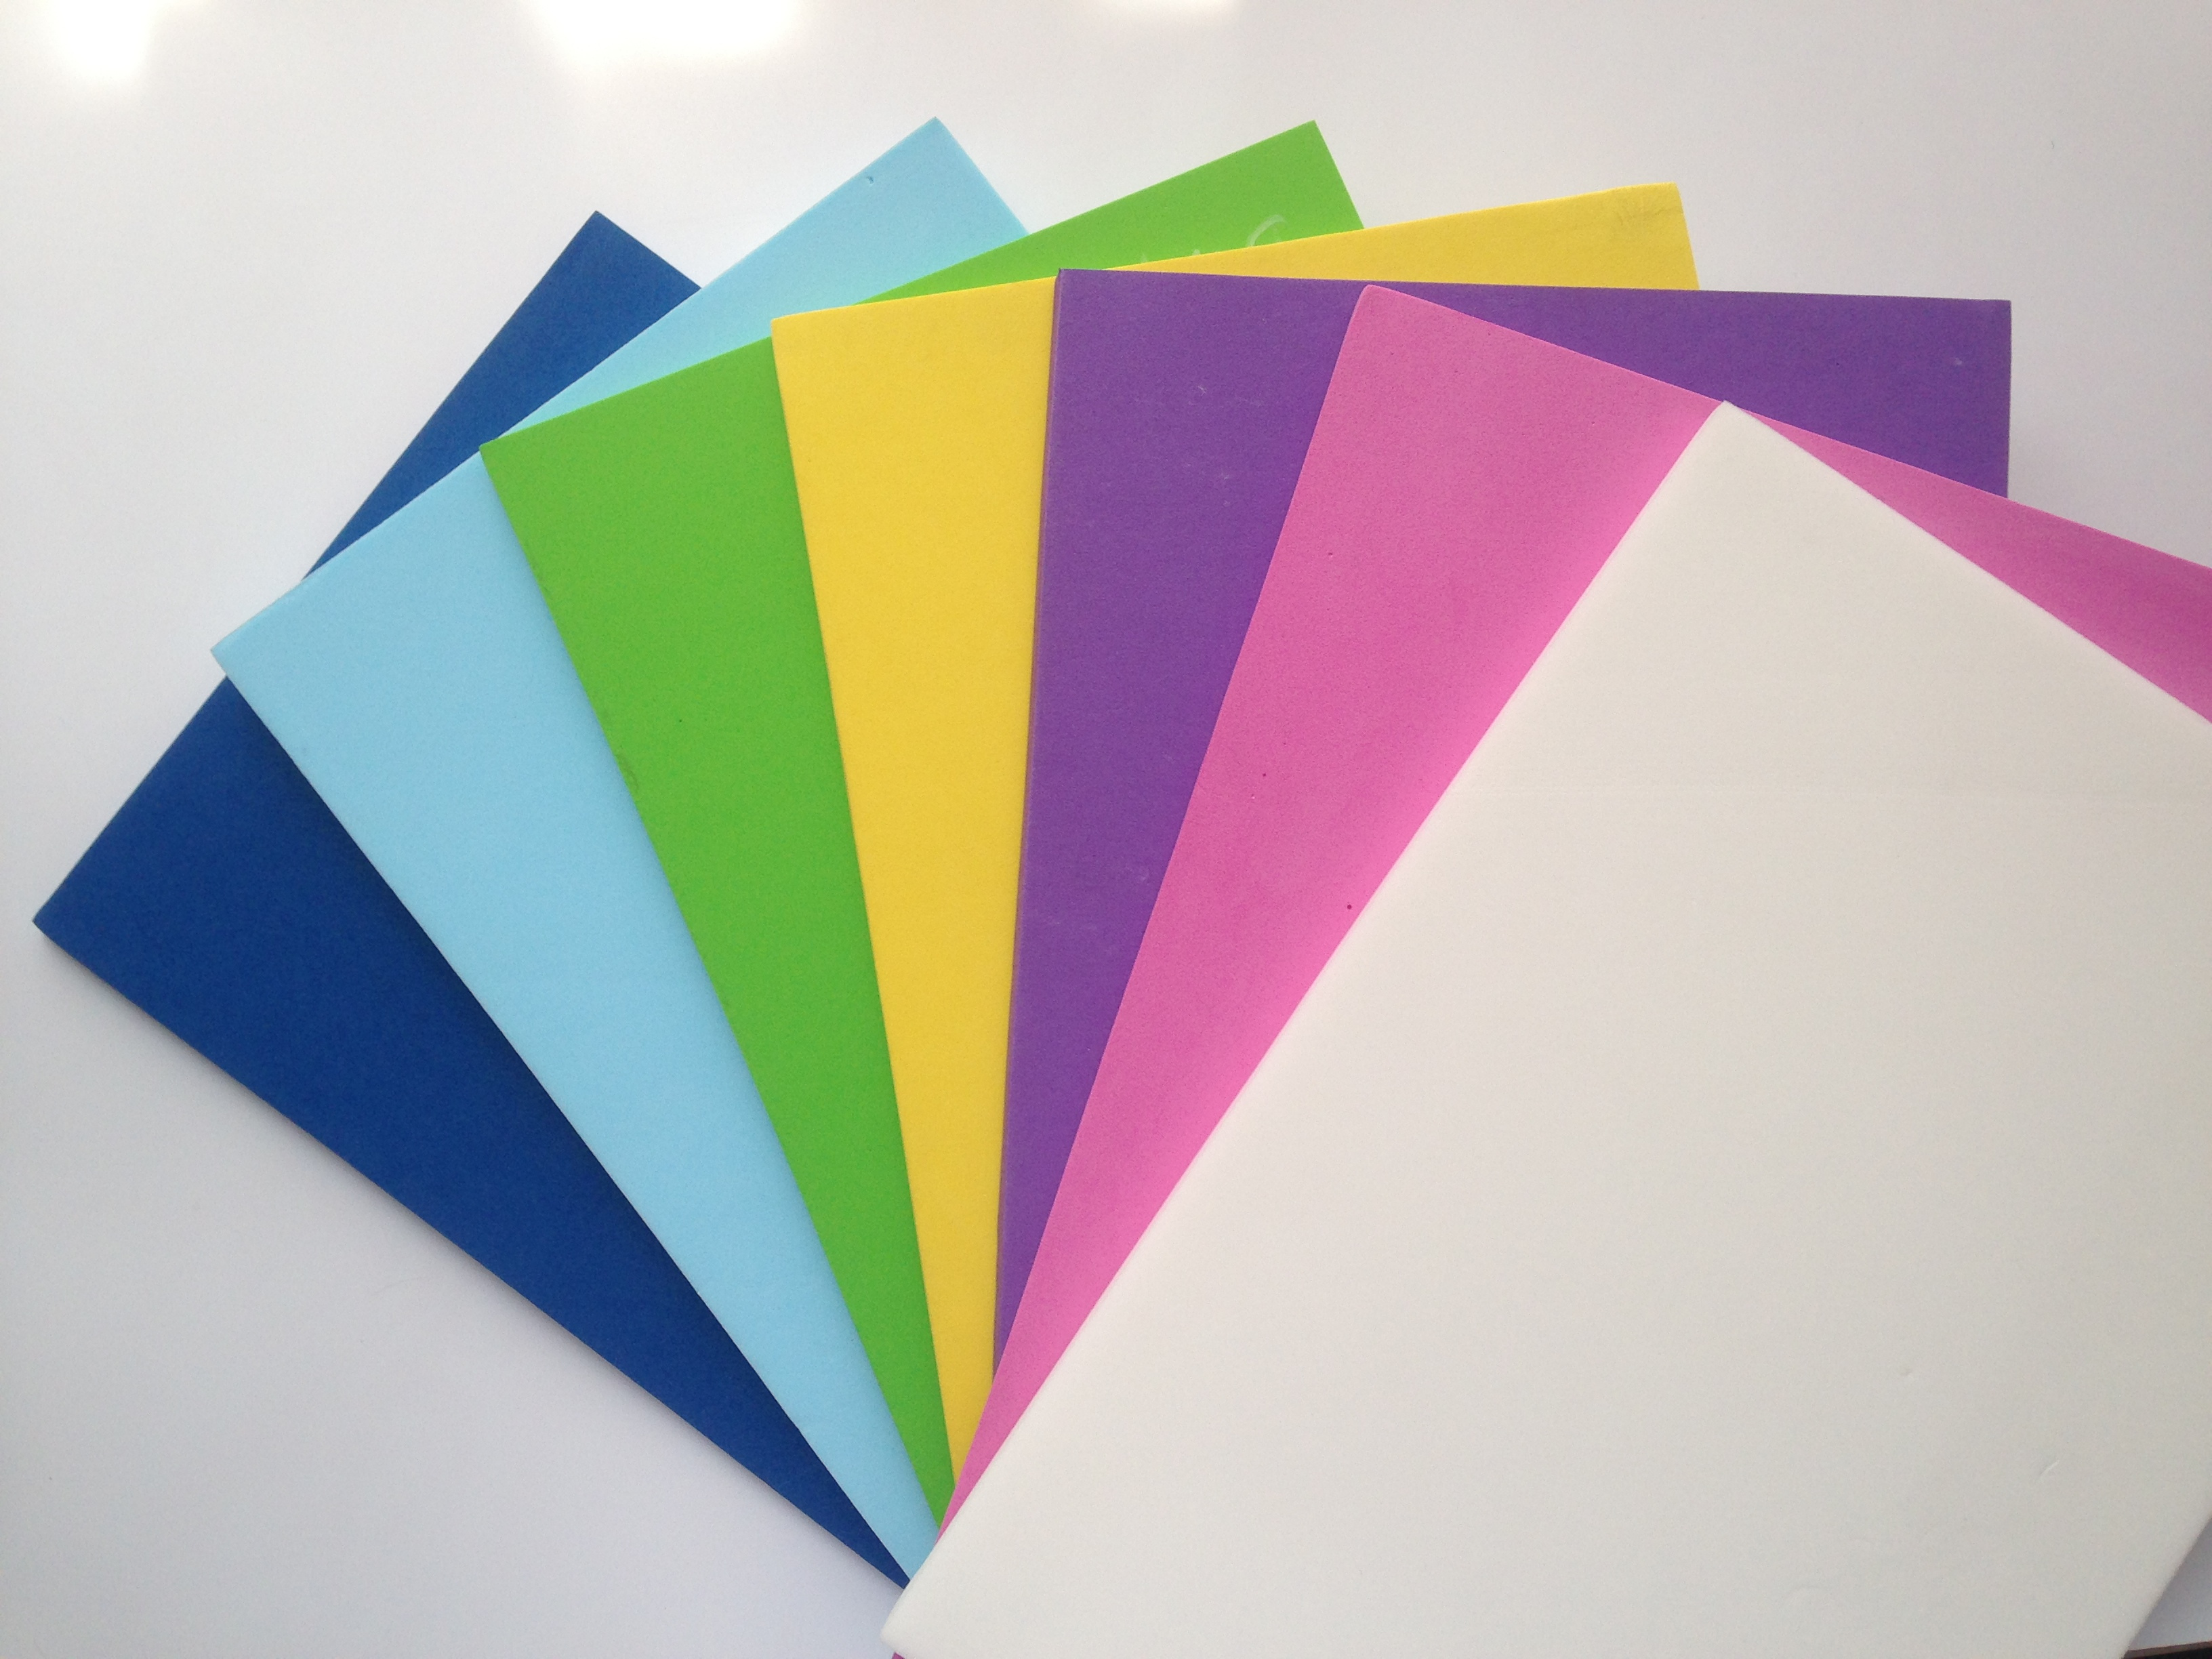 Colorful XLPE foam boards